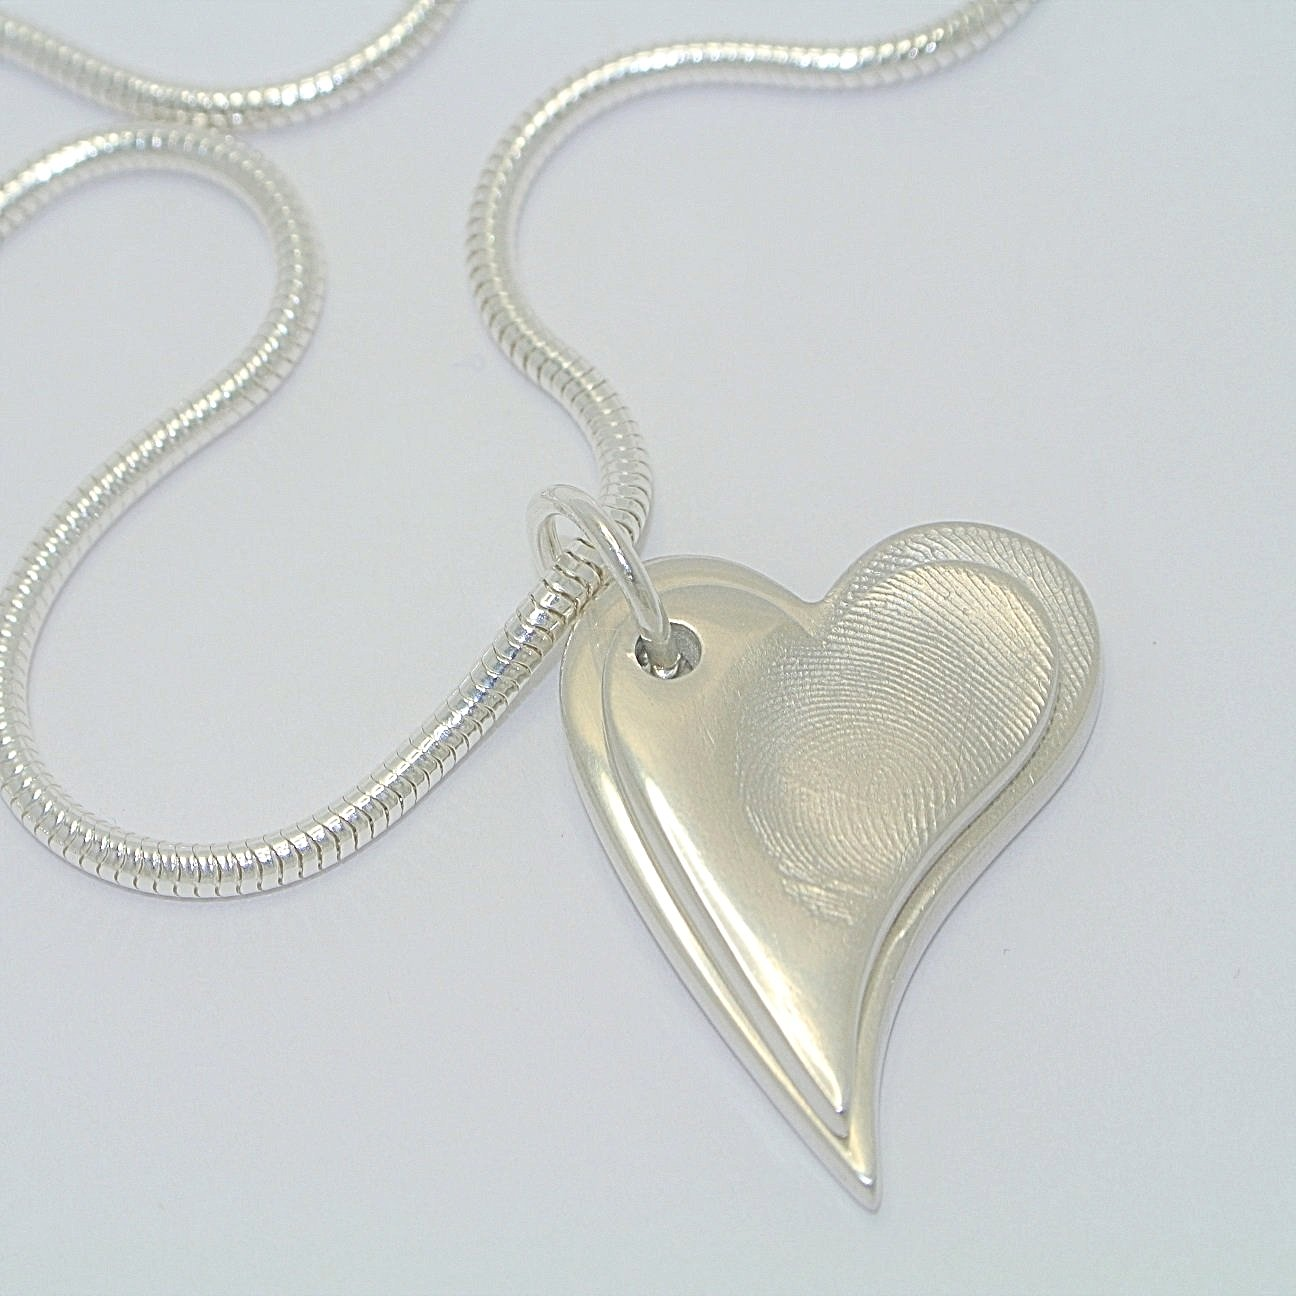 Descending Duo necklace Sterling Silver Fingerprint Jewellery